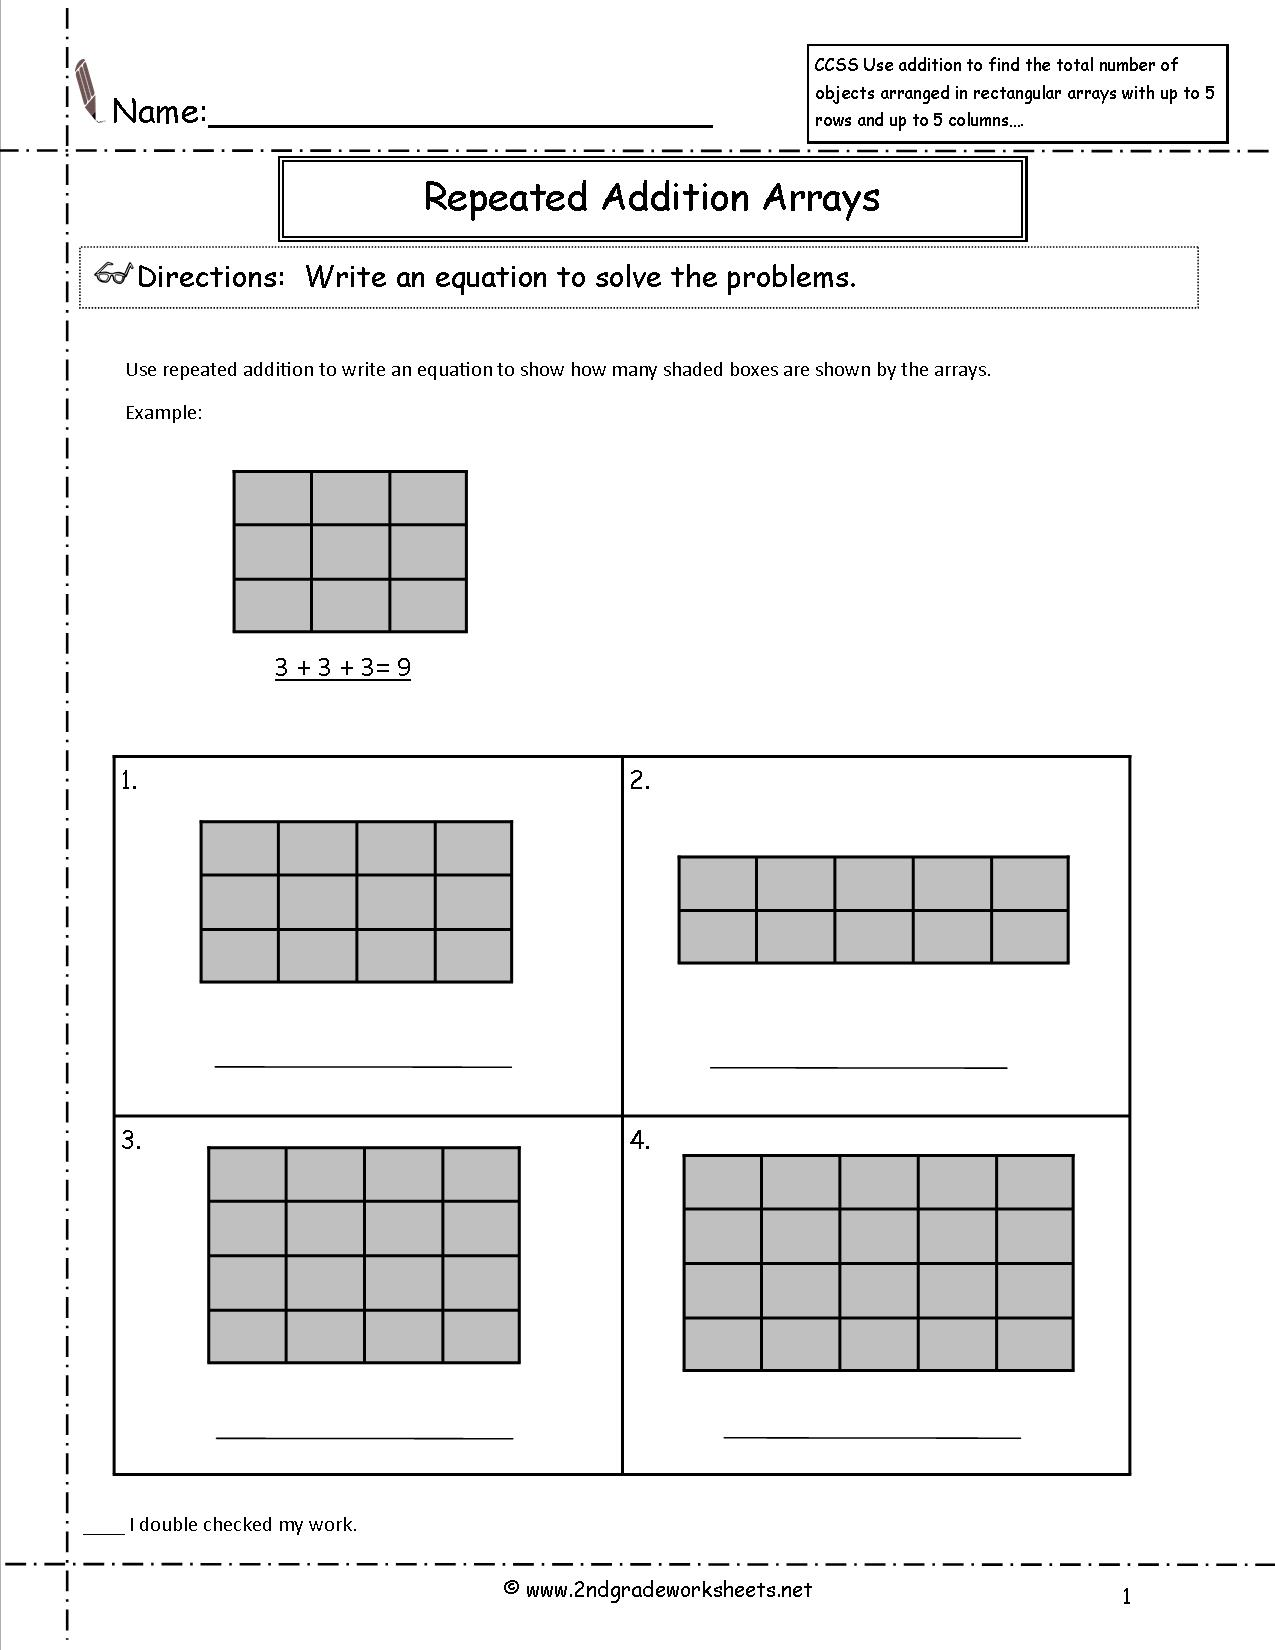 Teach Equal Groups Arrays Number Lines Repeated Addition And